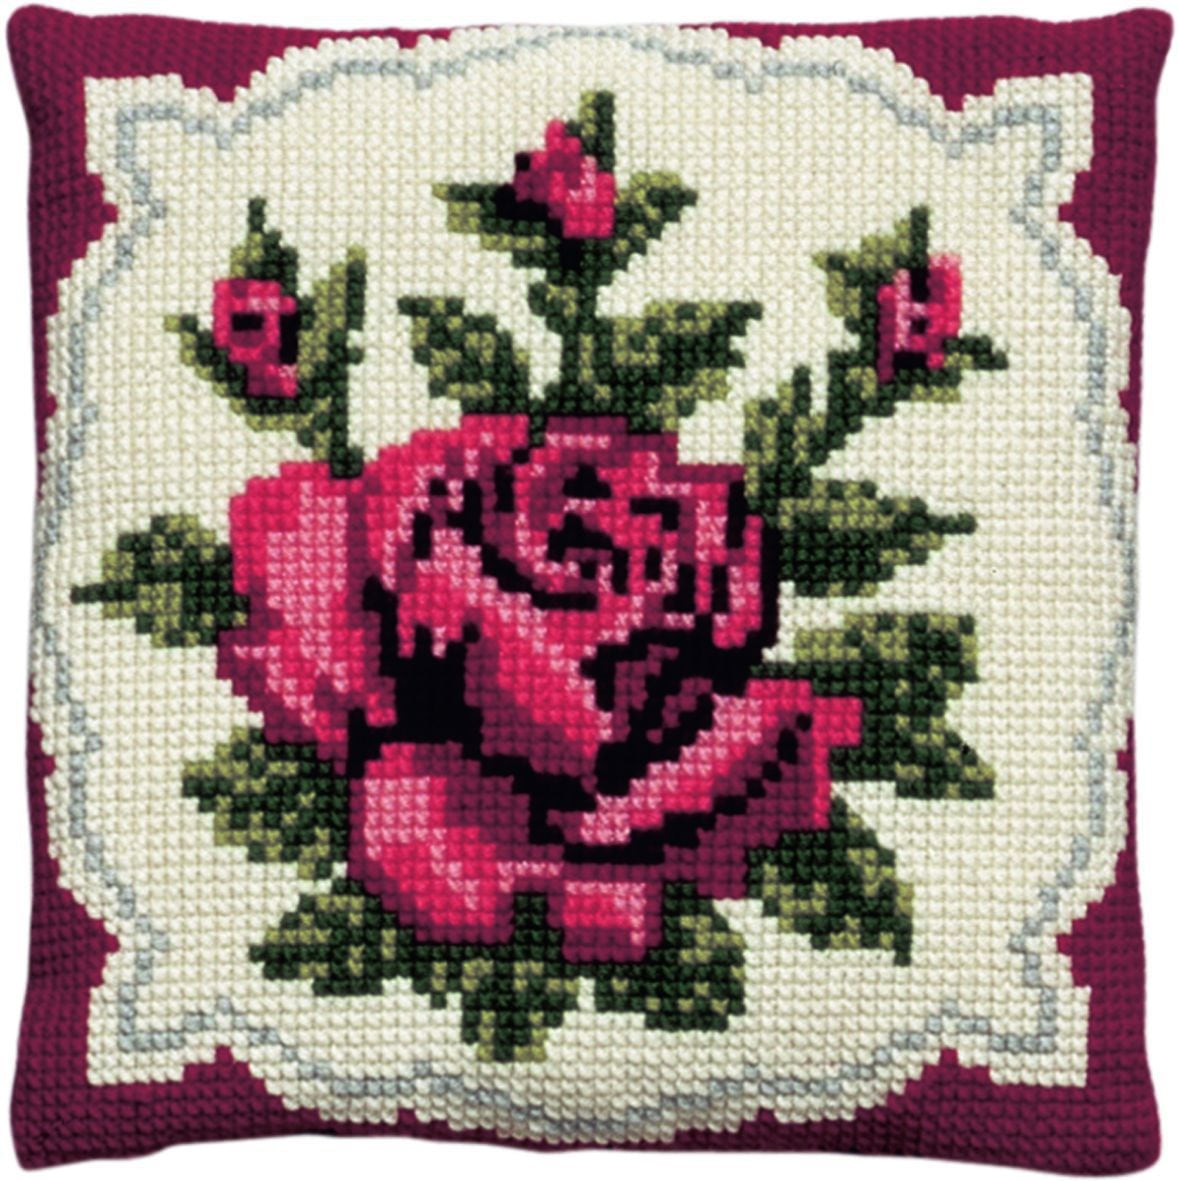 cross stitch cushion classic red rose printed